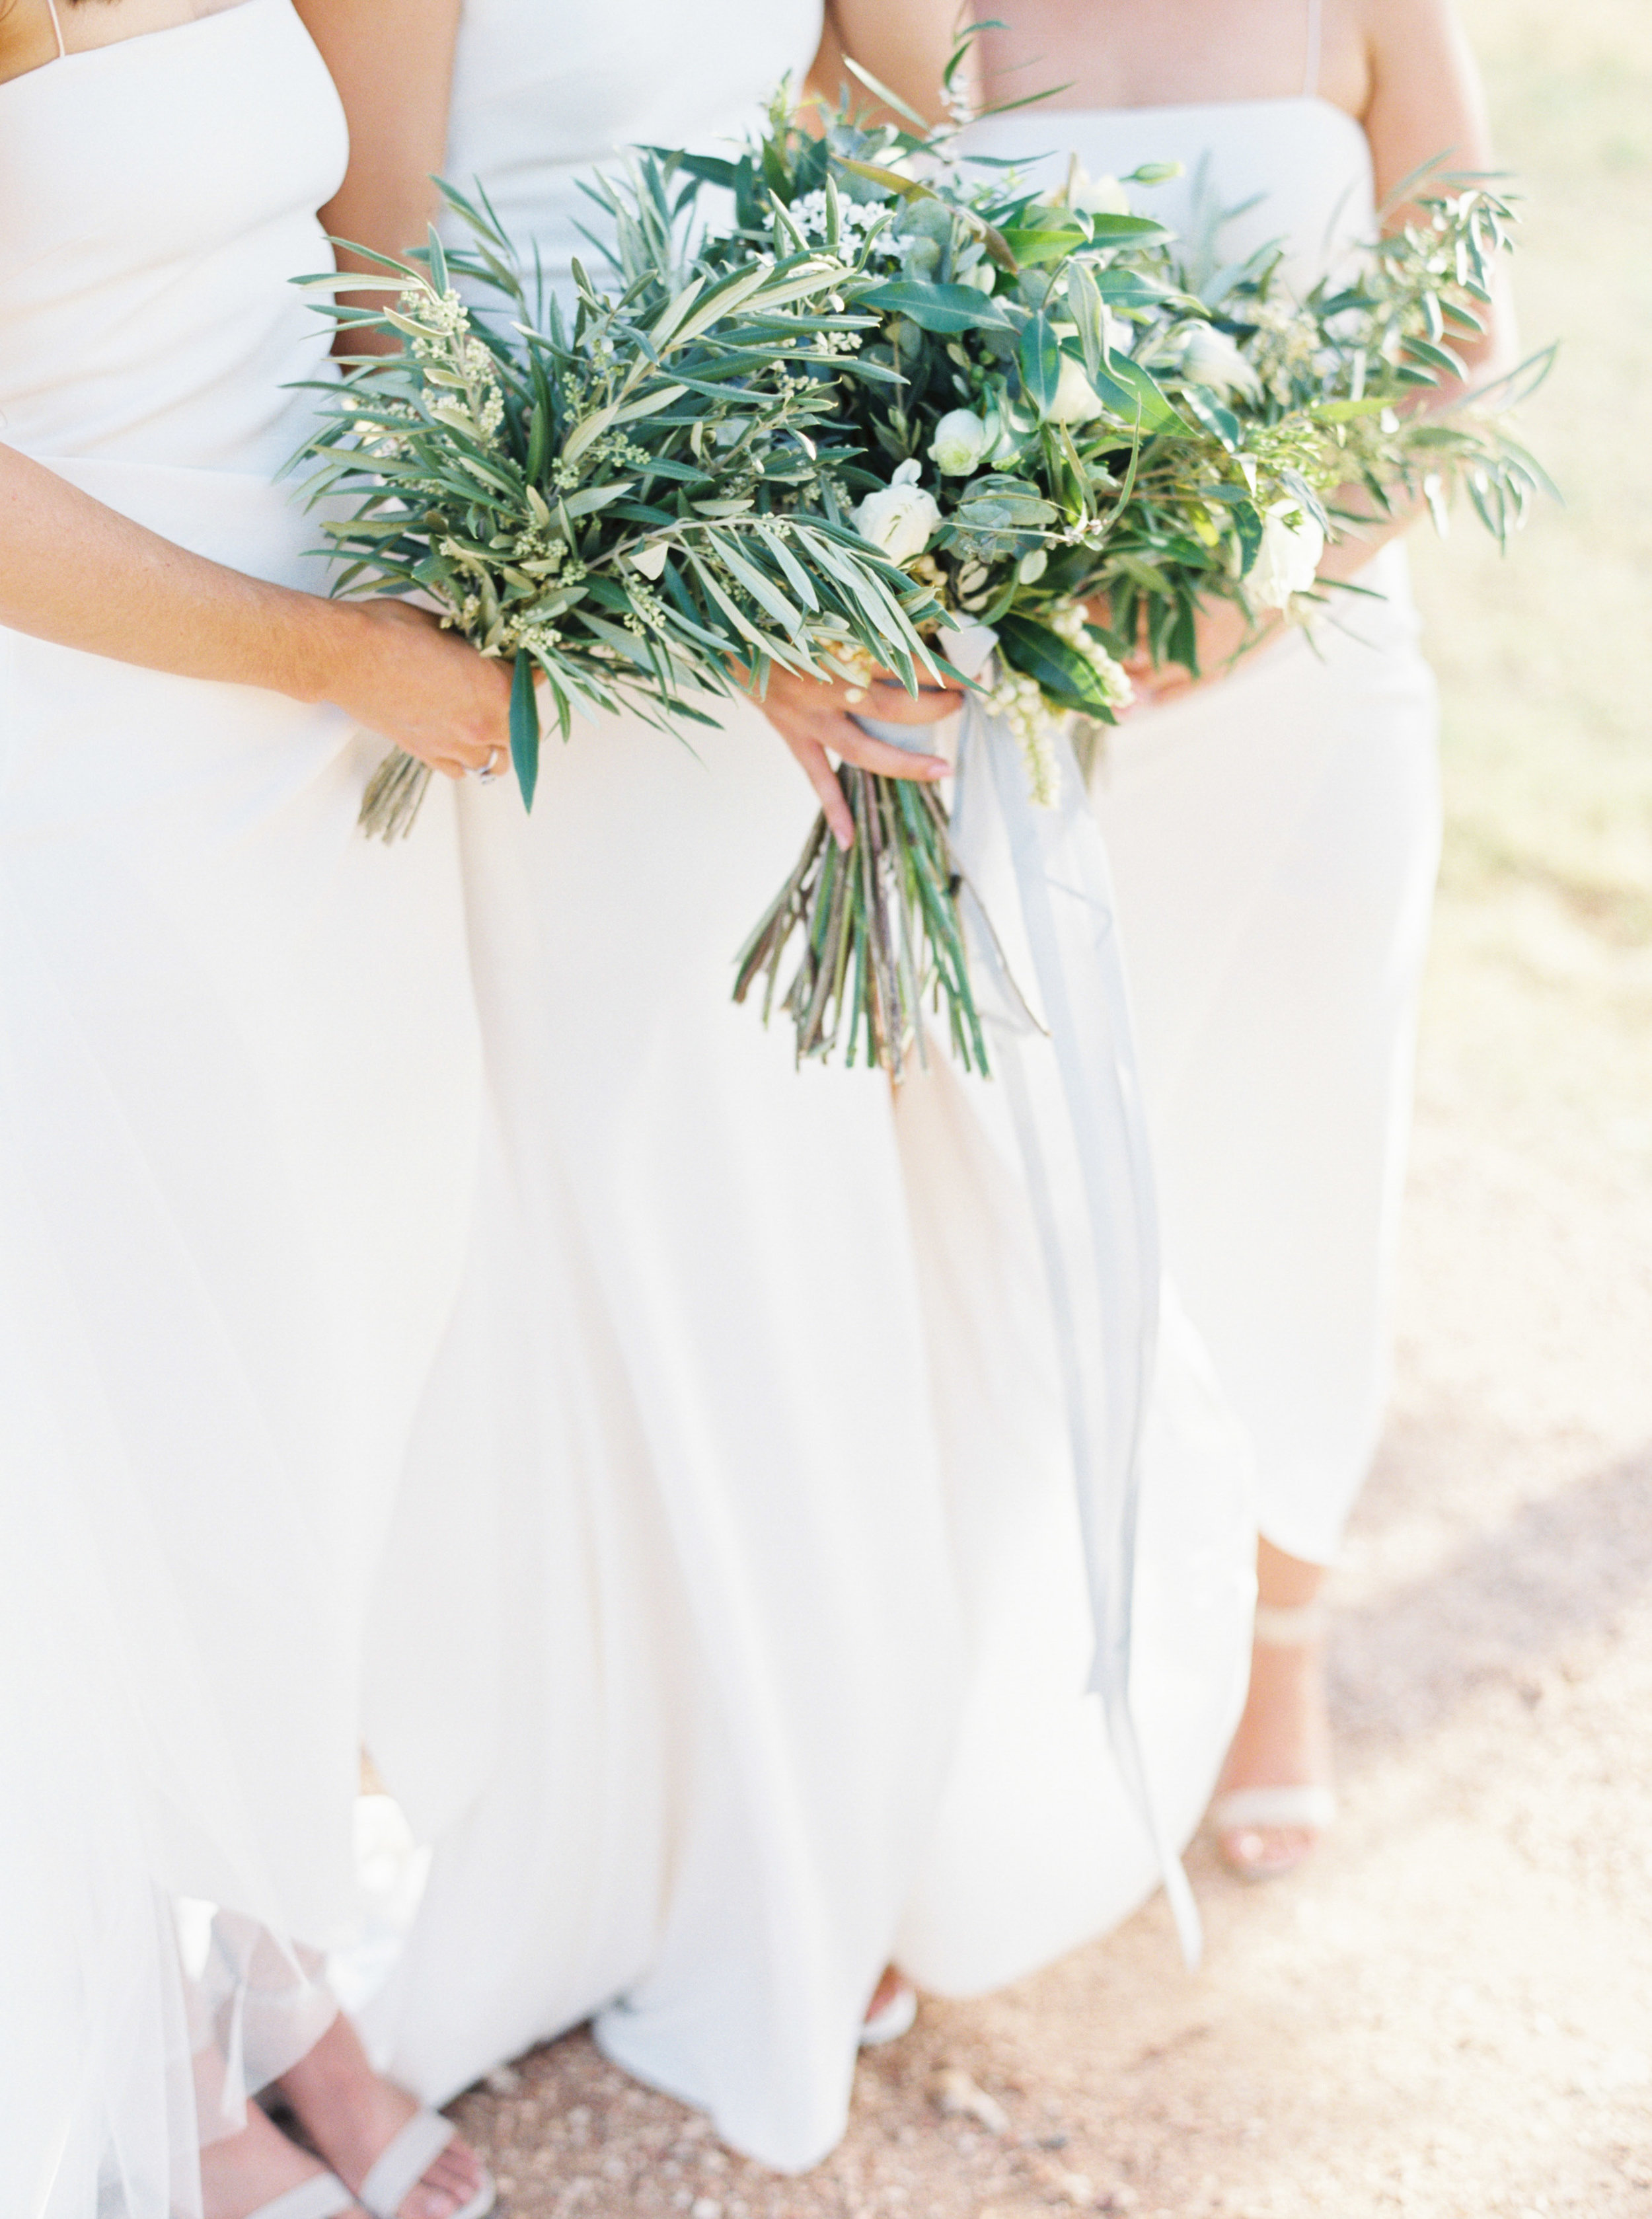 00055- Olive Tree Mediterranean Wedding in Mudgee NSW Australia Fine Art Film Wedding Lifestyle Photographer Sheri McMahon_.jpg